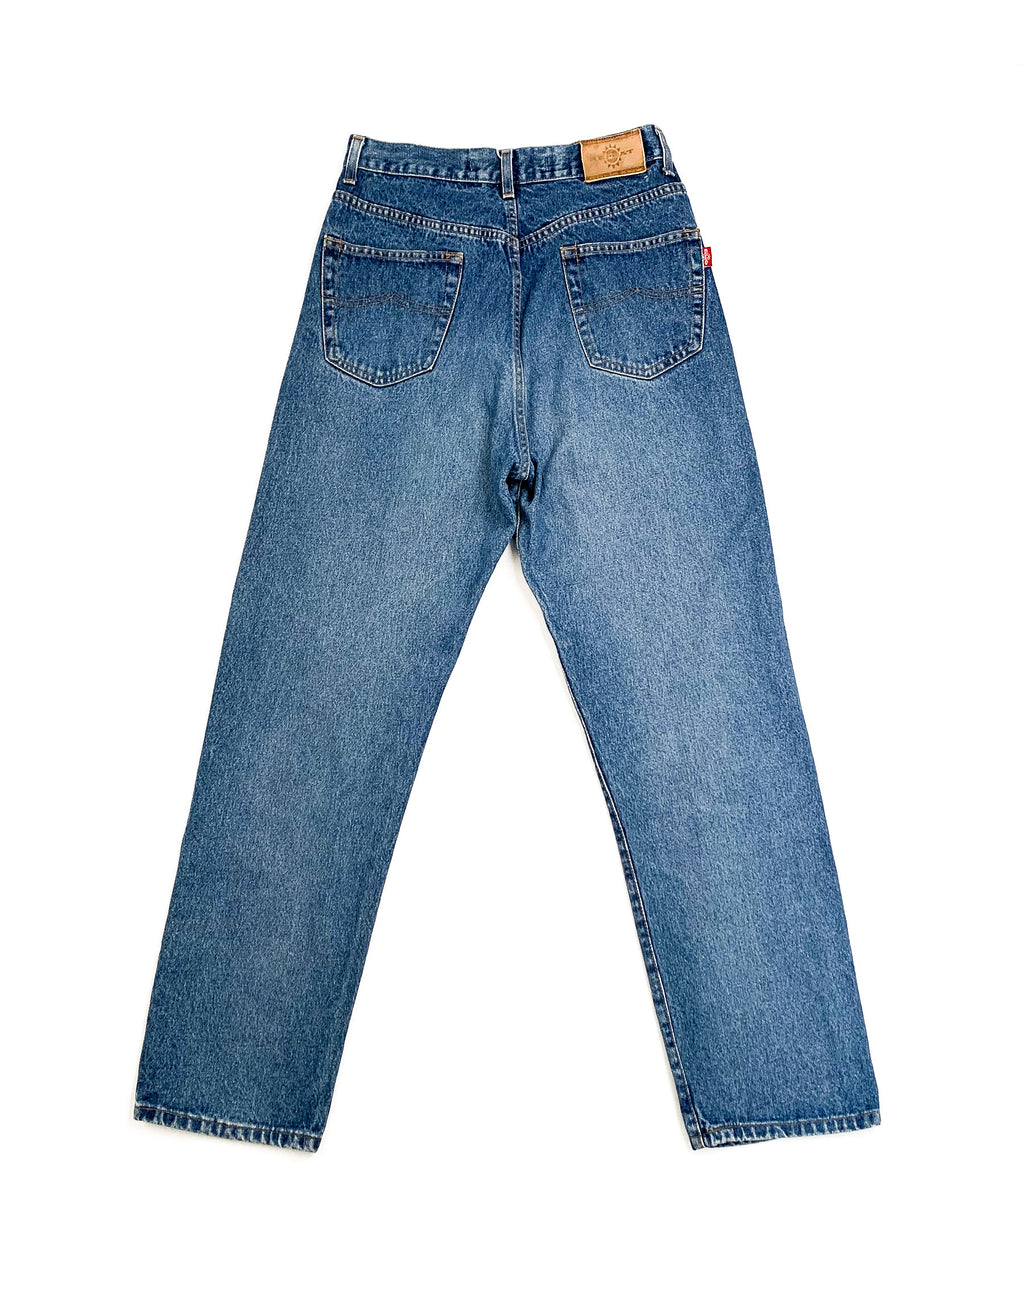 MID WASH BLUE DENIM JEANS